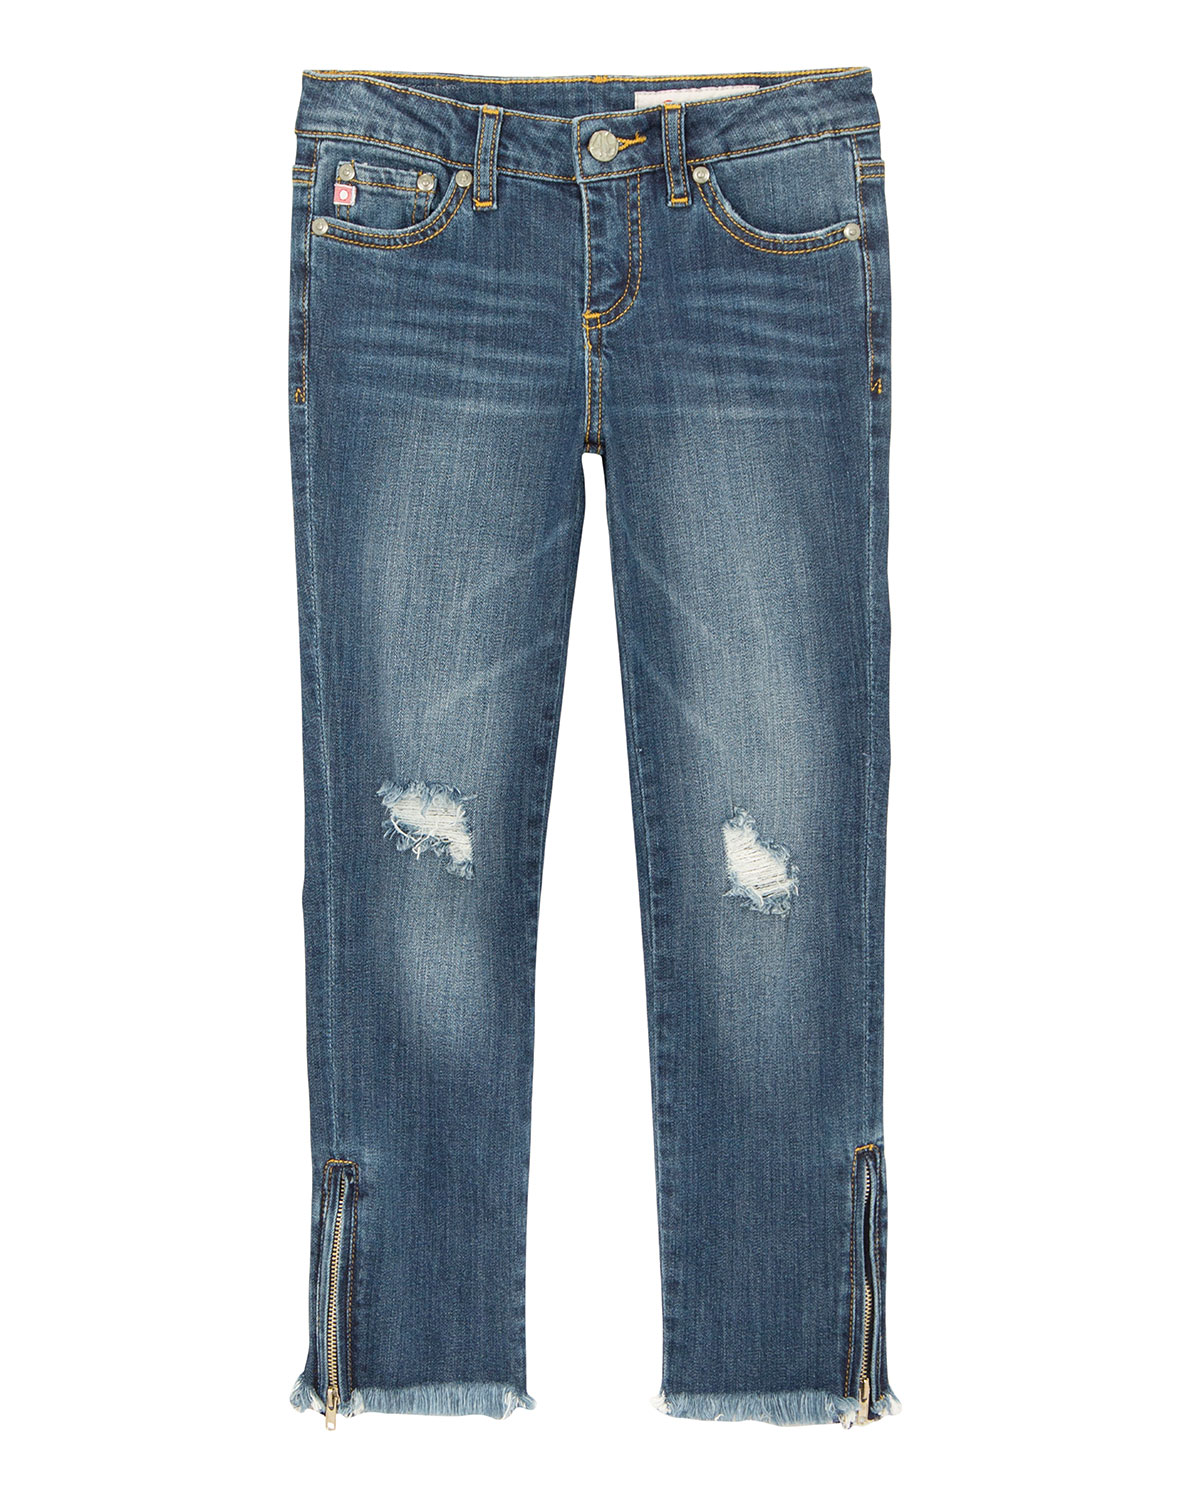 Farren Distressed Raw-Hem Embroidered Jeans w/ Zip Ankles, Size 7-14